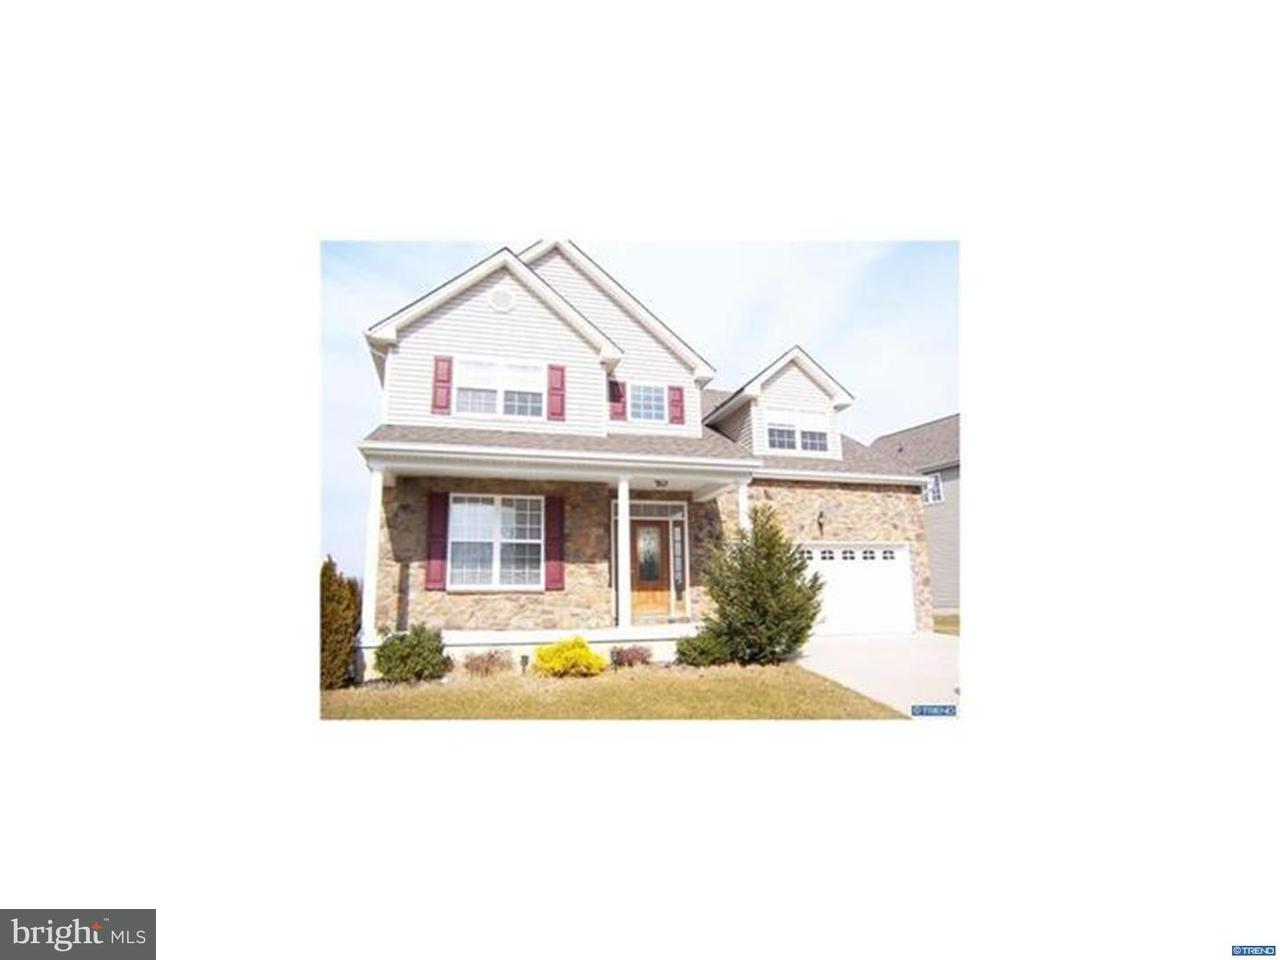 Single Family Home for Rent at 113 ROSEMARY Court Bear, Delaware 19701 United States